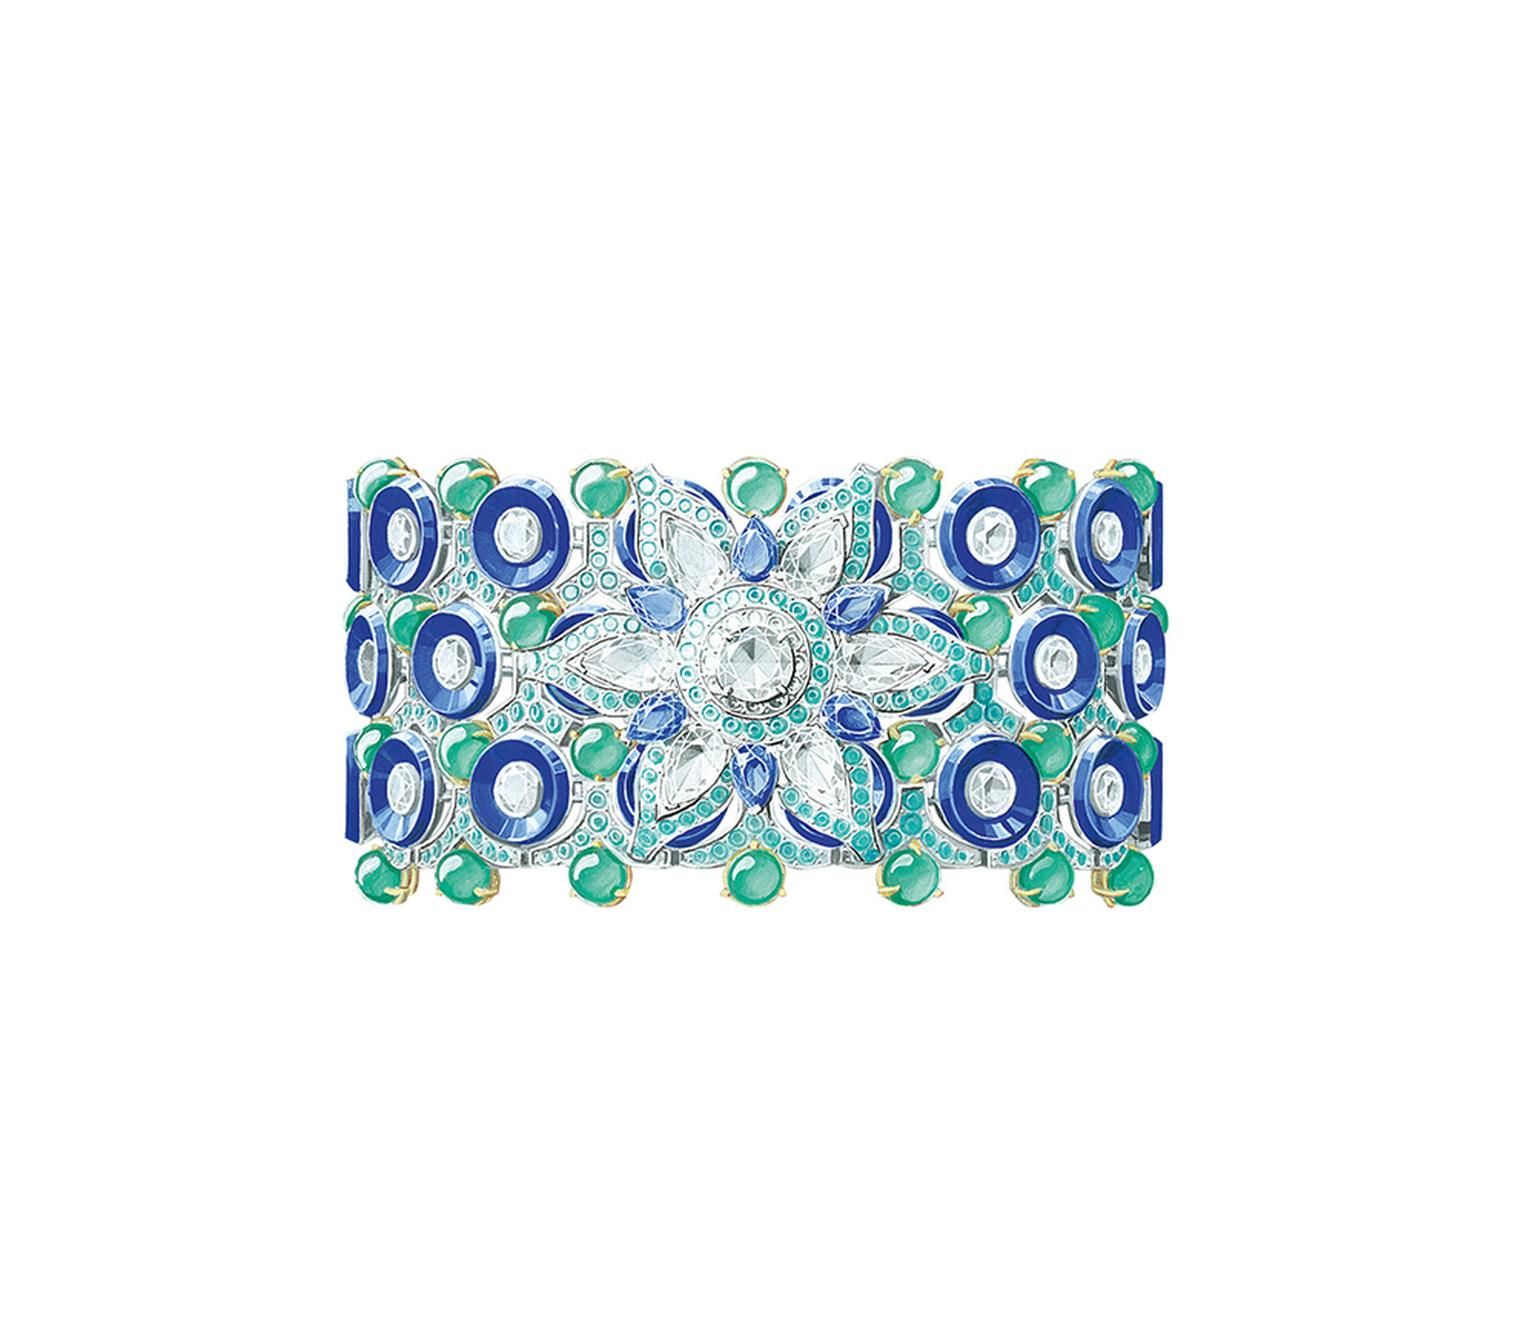 Van Cleef & Arpels Geometric Flower bracelet from the Pierres de Caractere Variations collection with pear-shaped sapphires, lapis lazuli, chrysoprase beads, Paraiba-like tourmalines and round diamonds set in white and yellow gold.